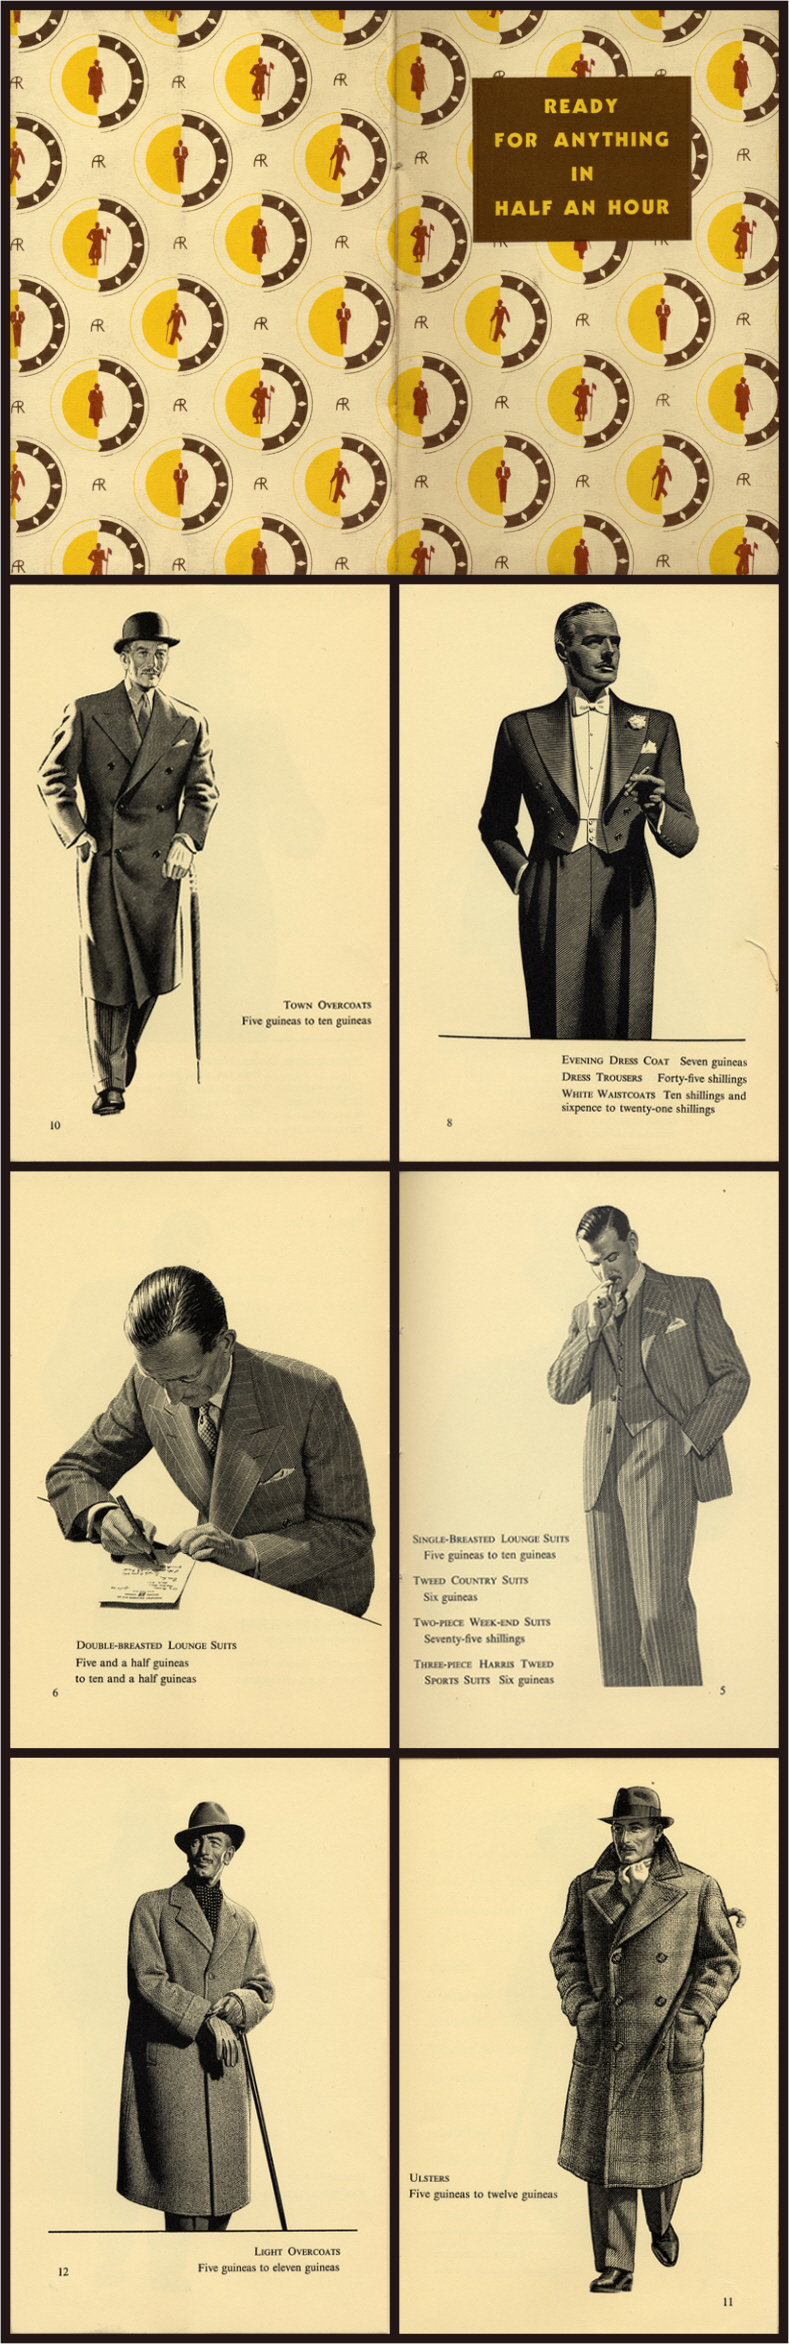 Men S Fashion Sales Brochure Ready For Anything In Half An Hour 1930s Austin Reed Tailoring Shops Eng Fashion Sale Vintage Gentleman Vintage Advertisements